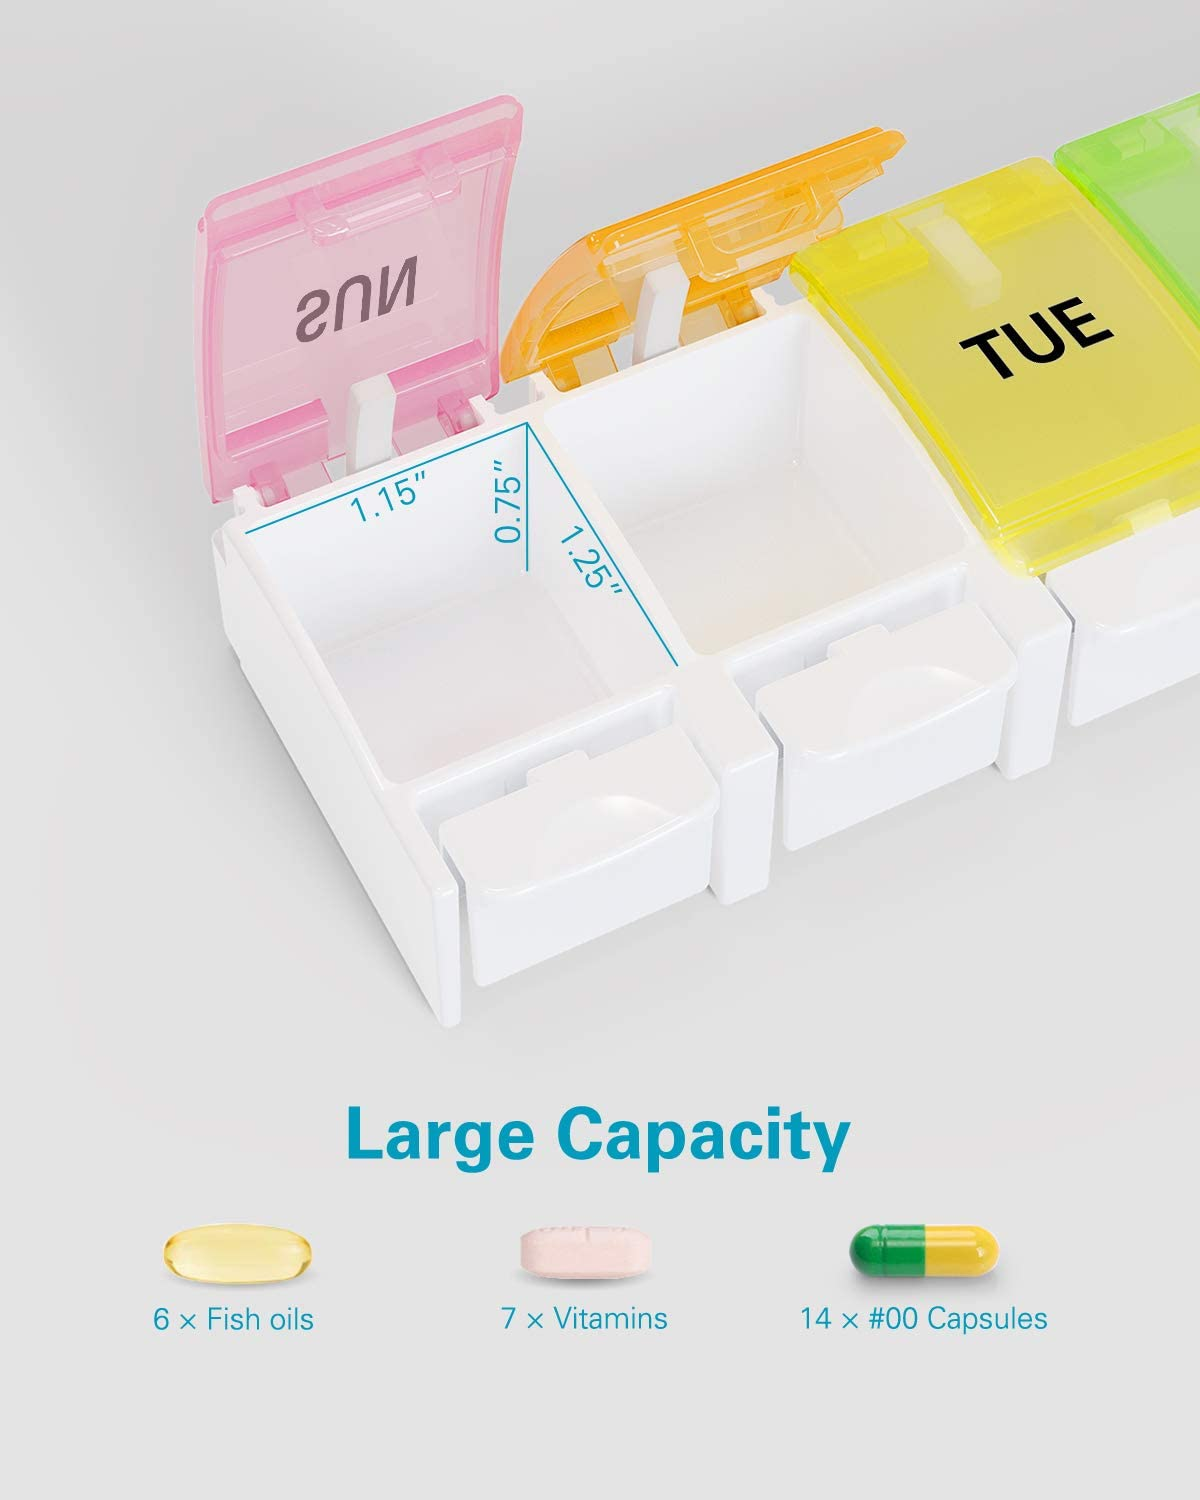 BUG HULL Pill Organizer, Easy to Open Weekly Pill Box, 7 Day Pill Case Pop Open for Vitamins, Fish Oils, Supplements: Health & Personal Care